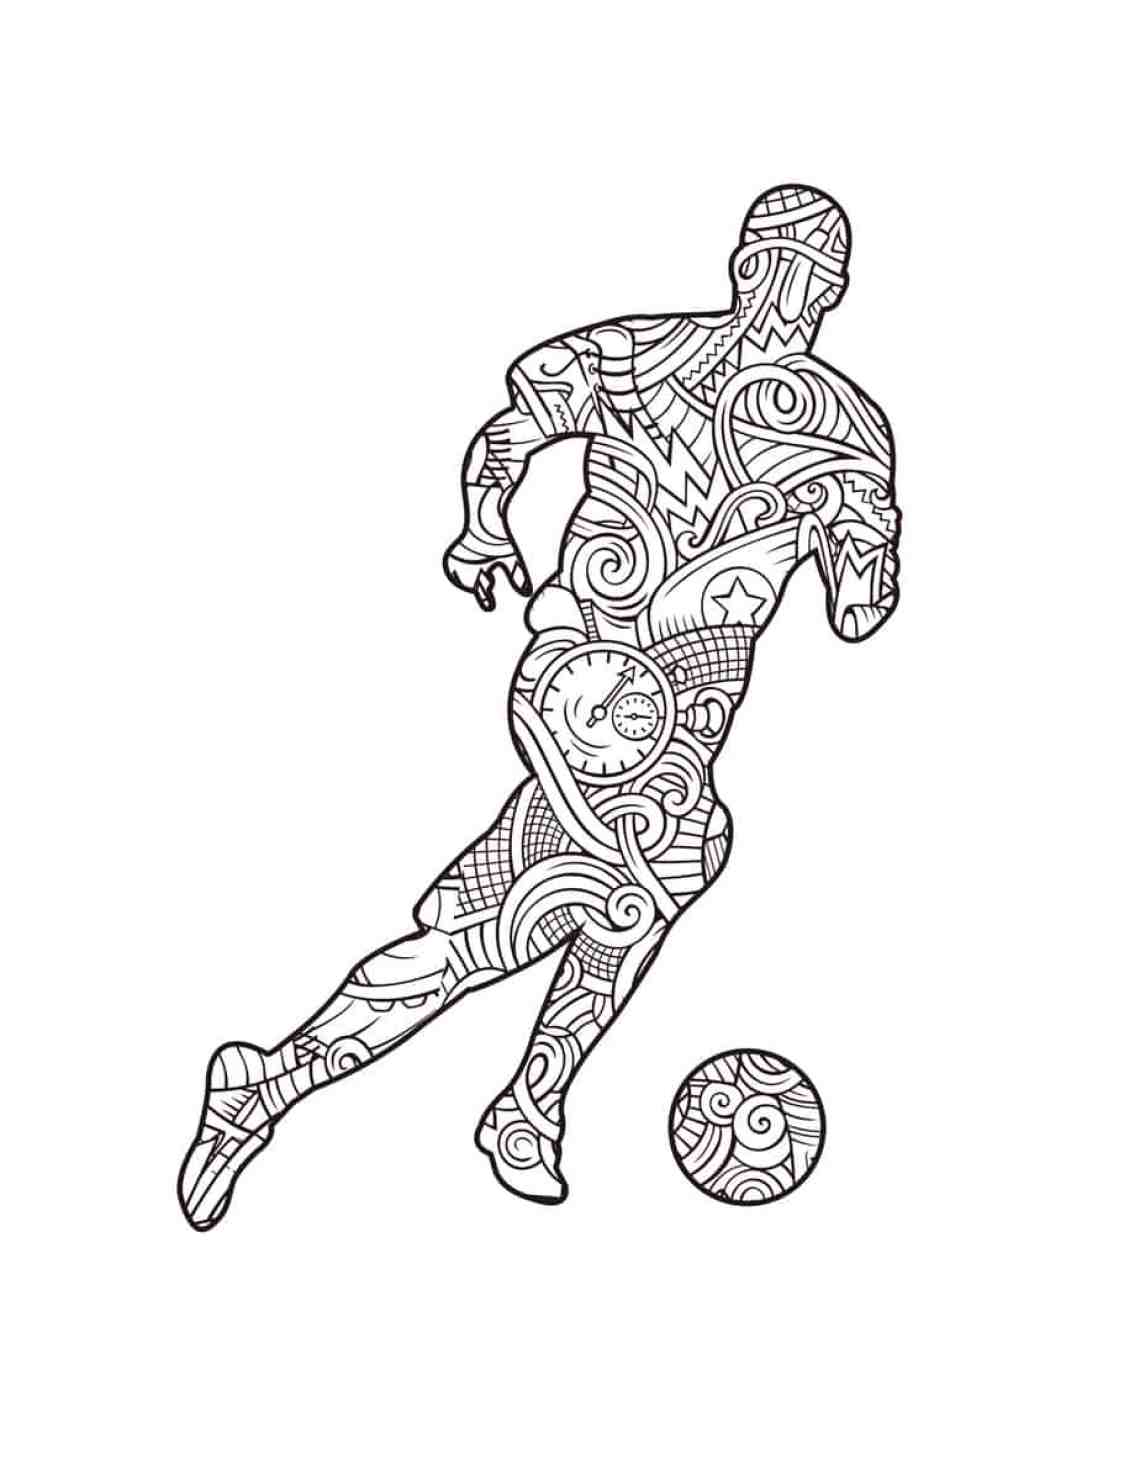 Football/Soccer Coloring Book: 2018 Russia World Cup coloring book ...